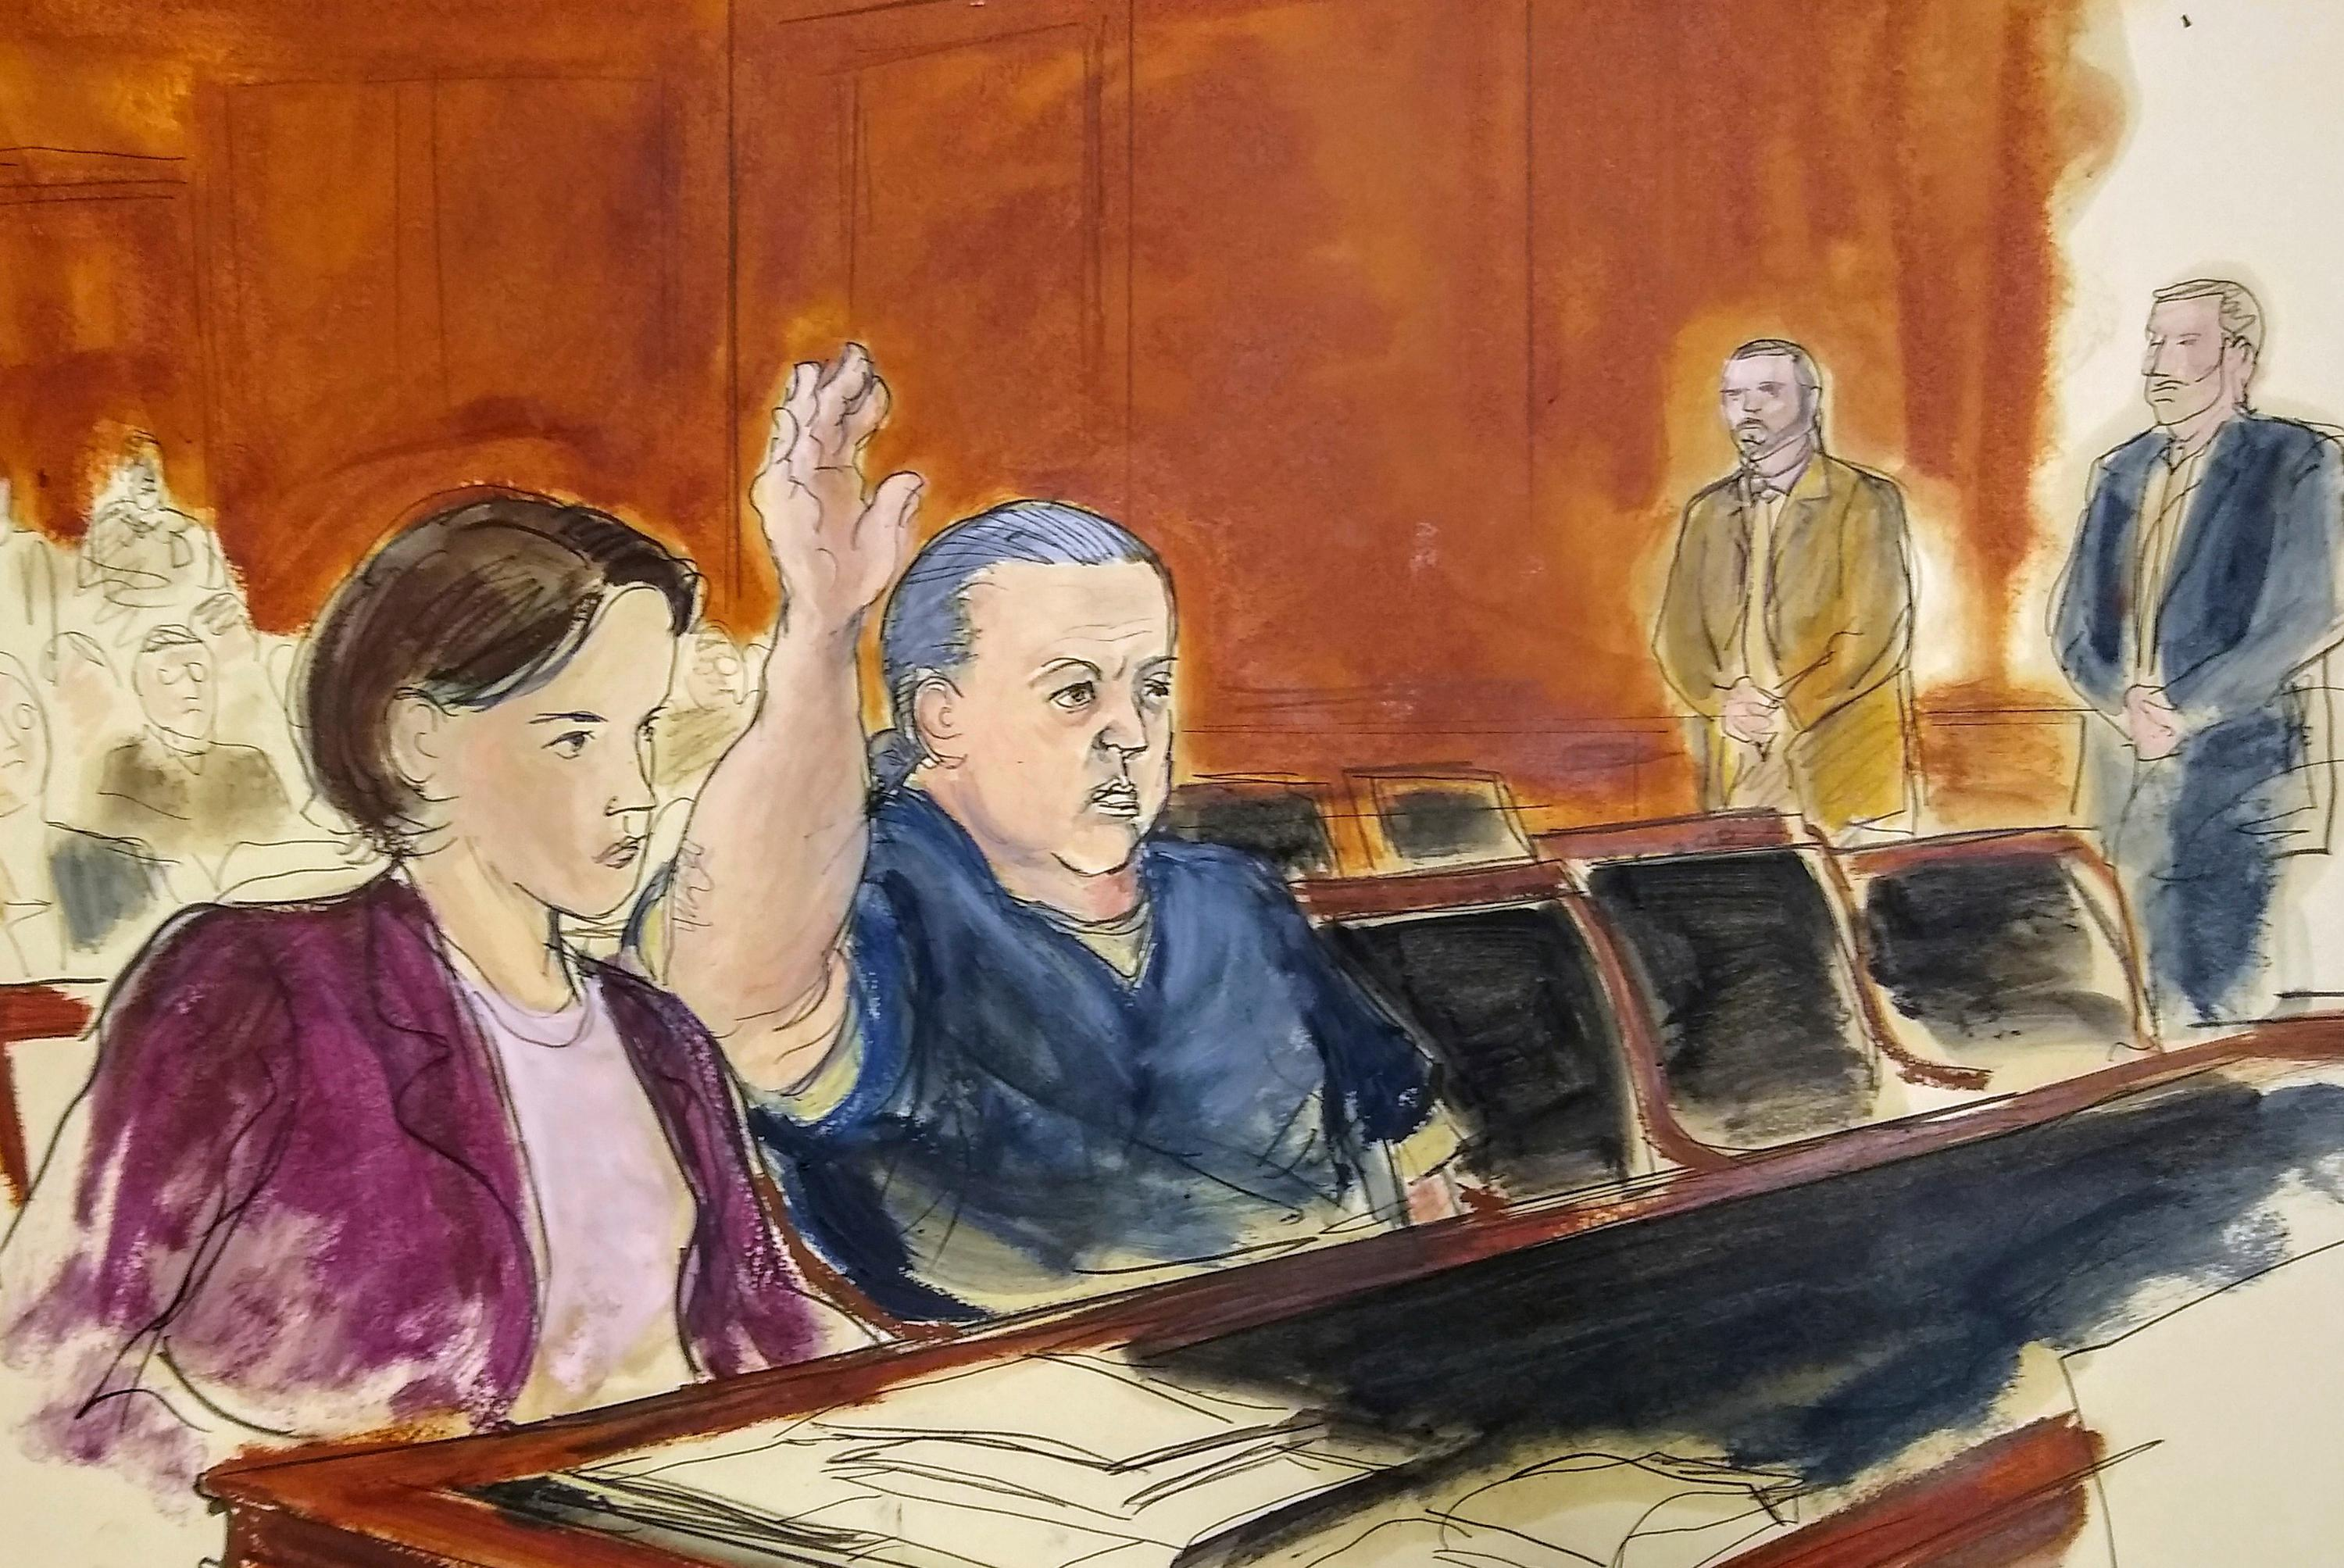 FILE- This Nov. 6, 2018 file courtroom sketch, pipe bomb suspect Cesar Sayoc raises his arm to swear to the truth of his statement of need for assigned counsel, during his presentment in Manhattan Federal Court in New York. he Florida man who authorities say sent pipe bombs to prominent critics of President Donald Trump, is expected to plead guilty in Manhattan federal court on Thursday, March 21, 2019. (Elizabeth Williams via AP)